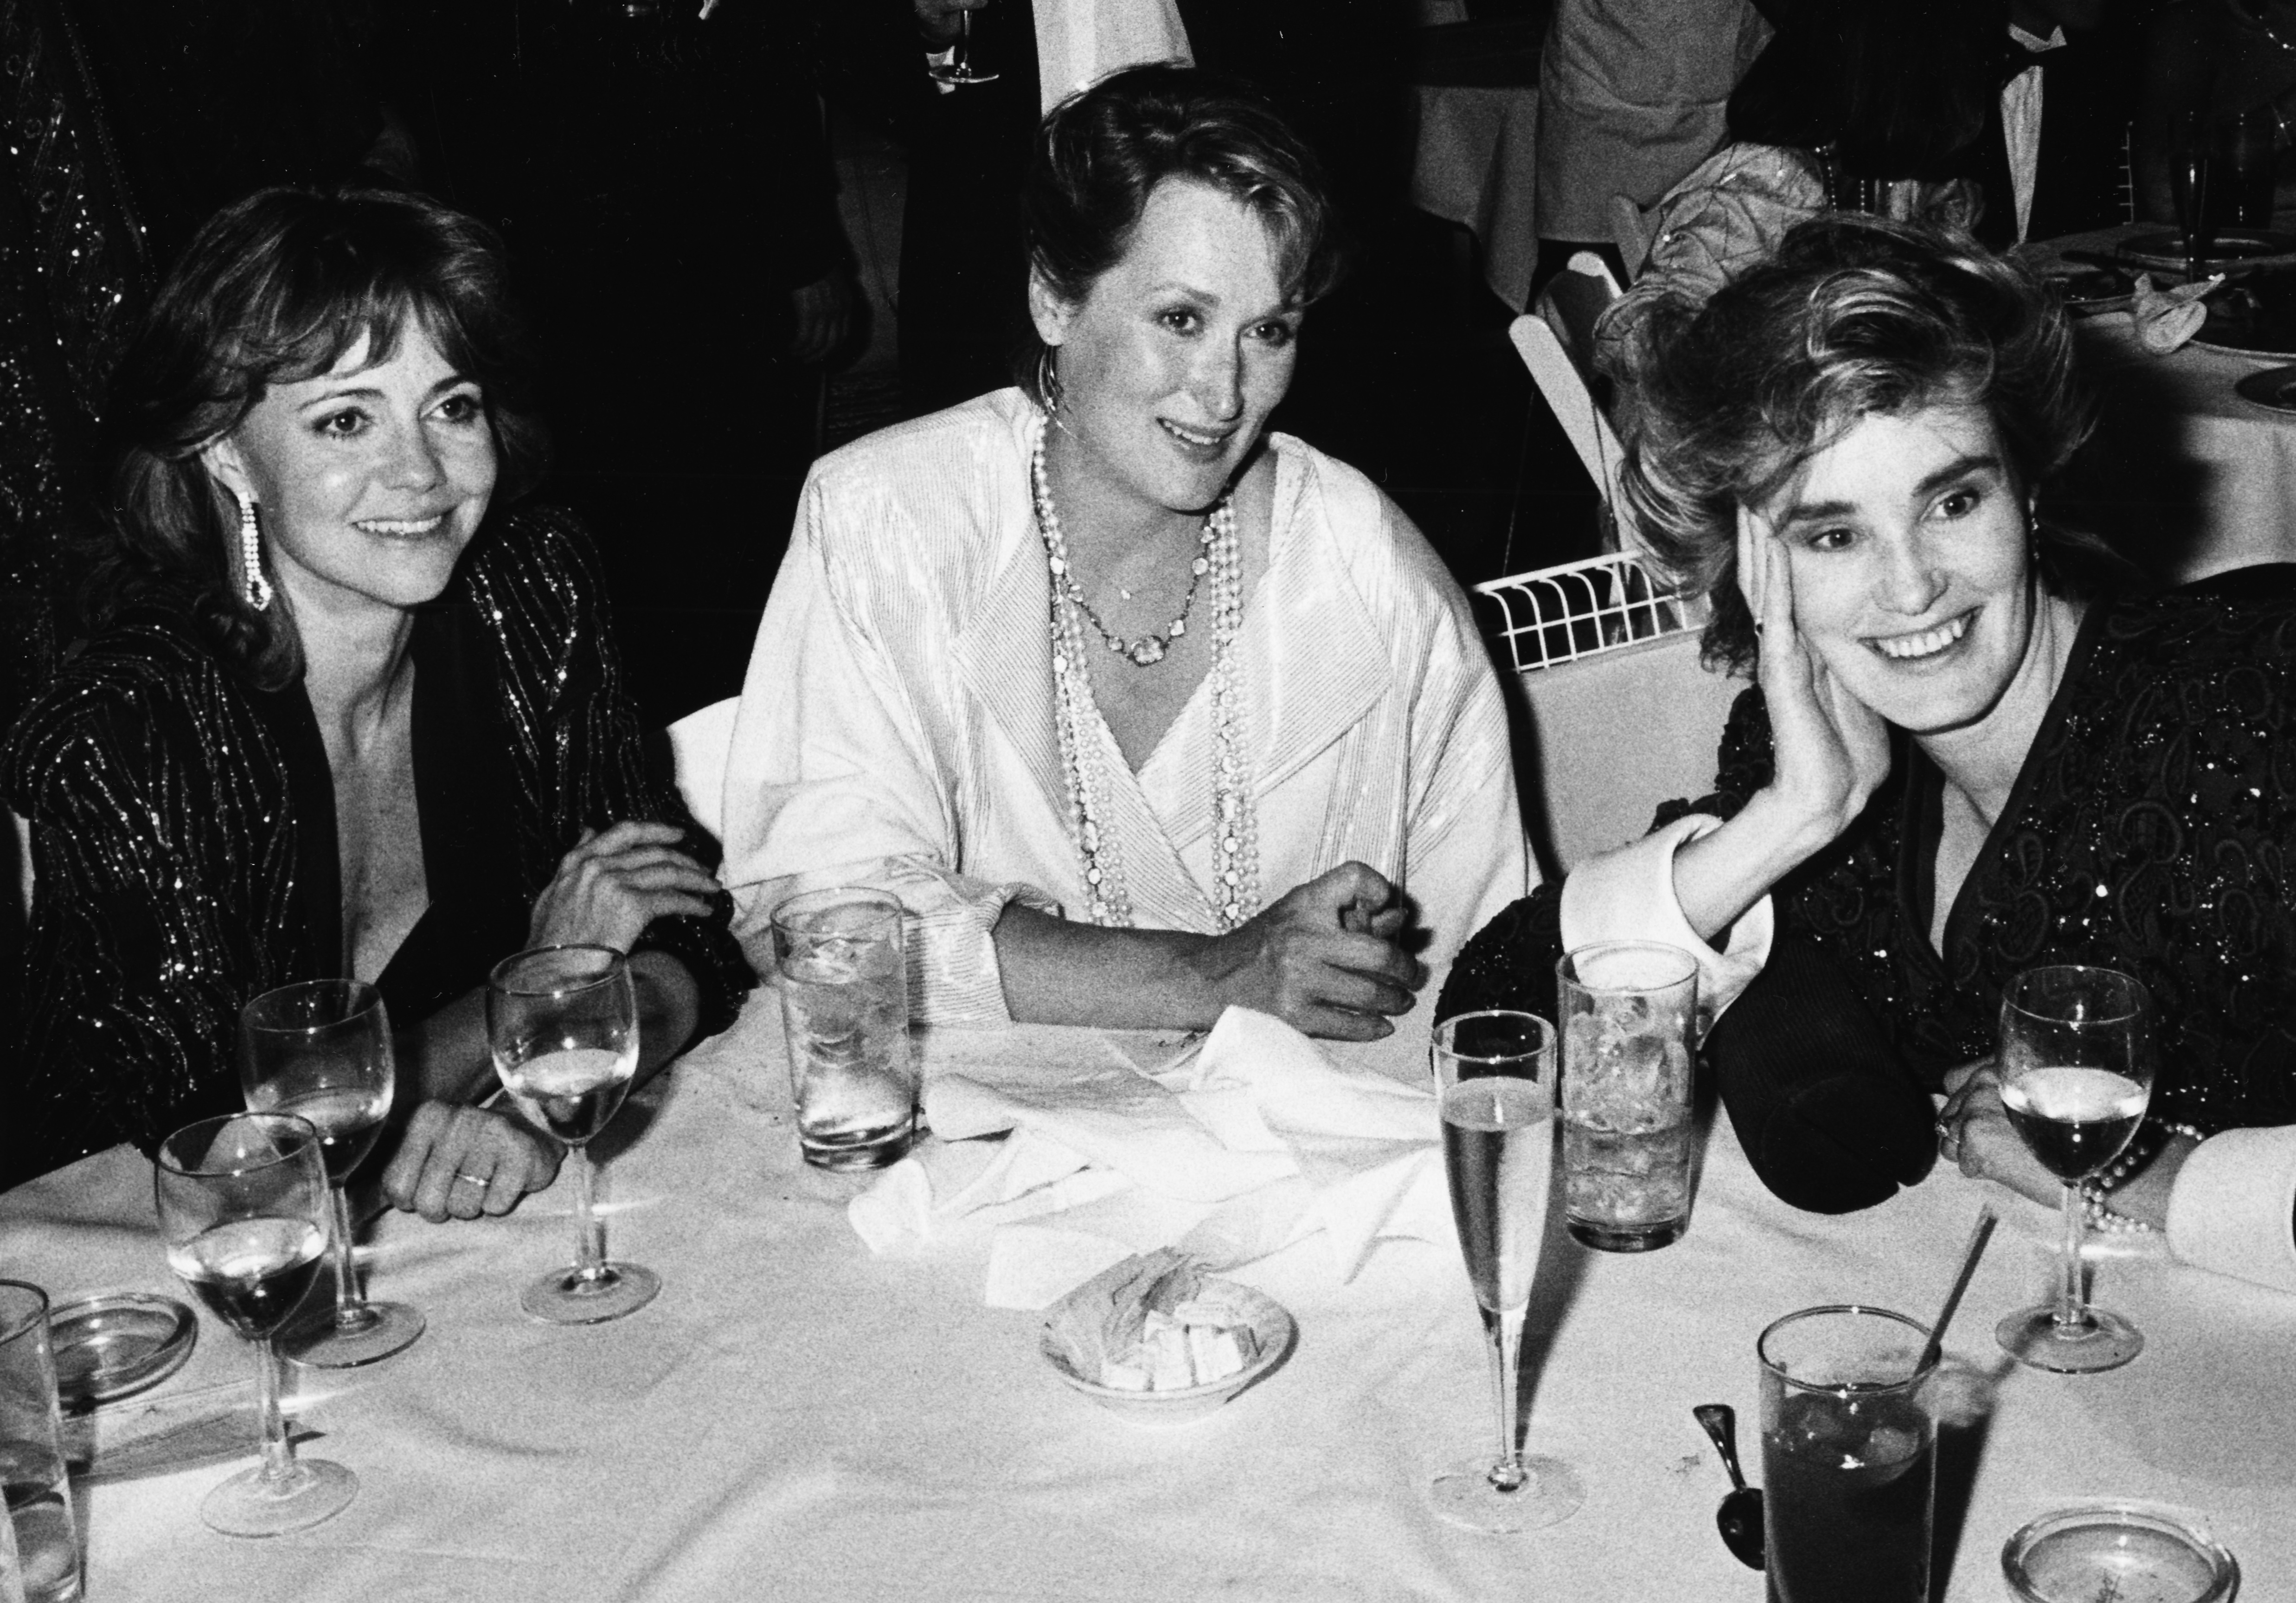 Sally Field, Meryl Streep and Jessica Lange sitting around a table together at a post Academy Awards party at Spago's in Los Angeles on March 24th 1986.